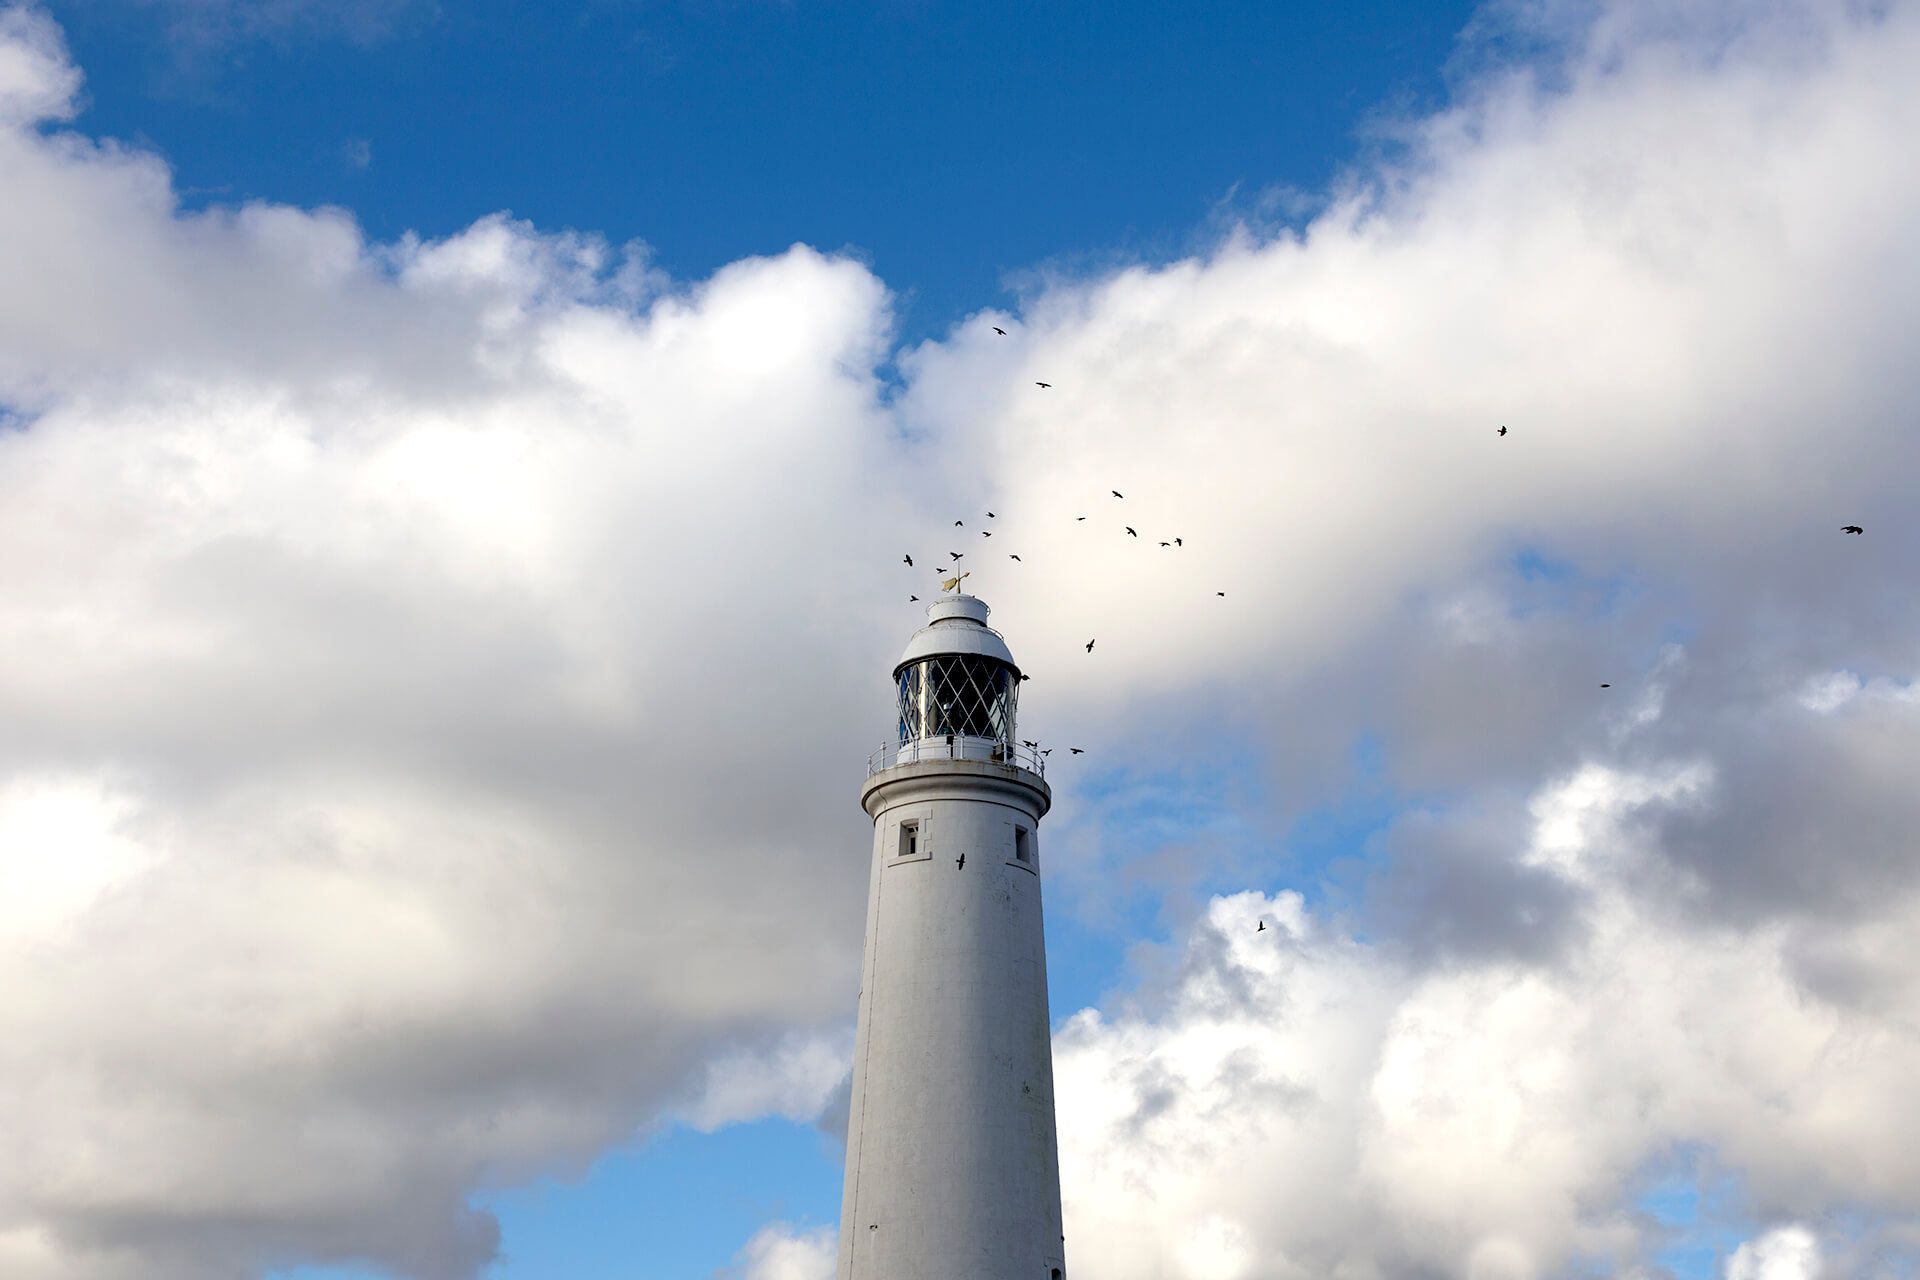 WeAreShuffle, Agency, Creative, Photography, Film, Production, Beach, Lighthouse, Whitley Bay, Sky, Clouds, St Mary's Lighthouse